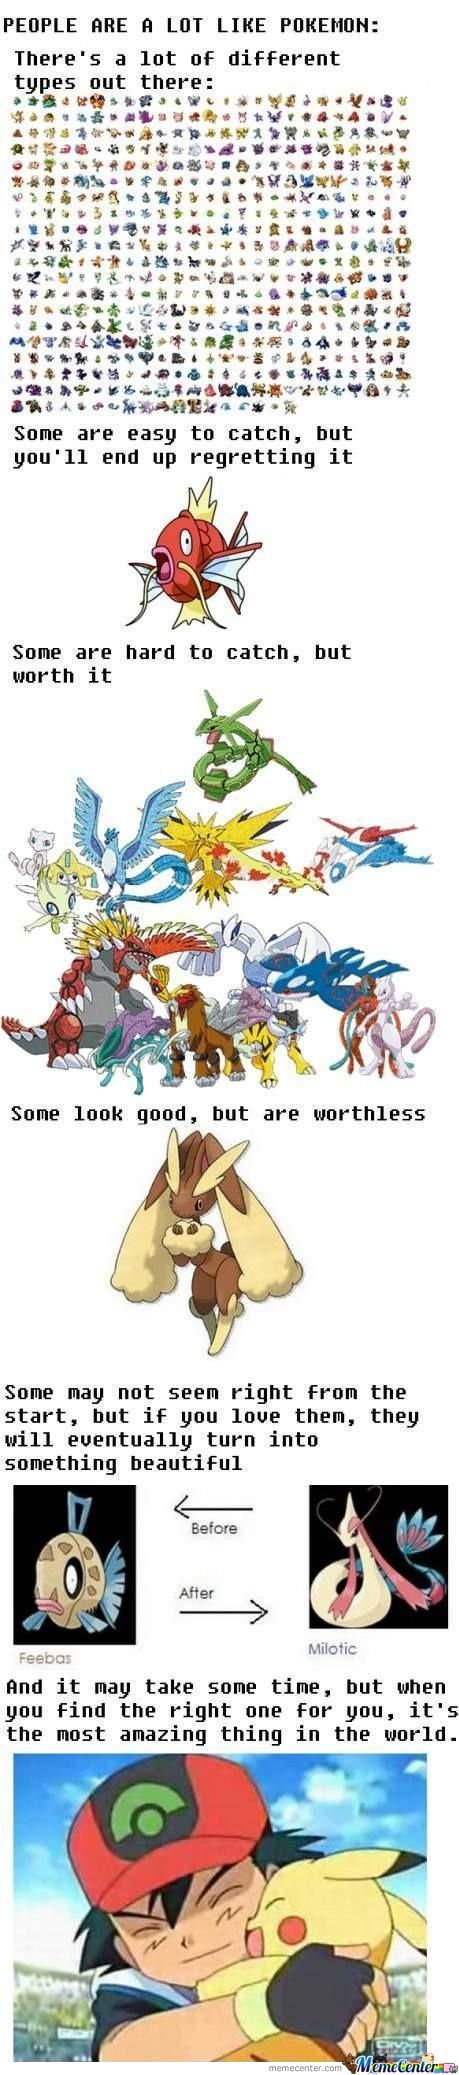 Pokemon Philosophy